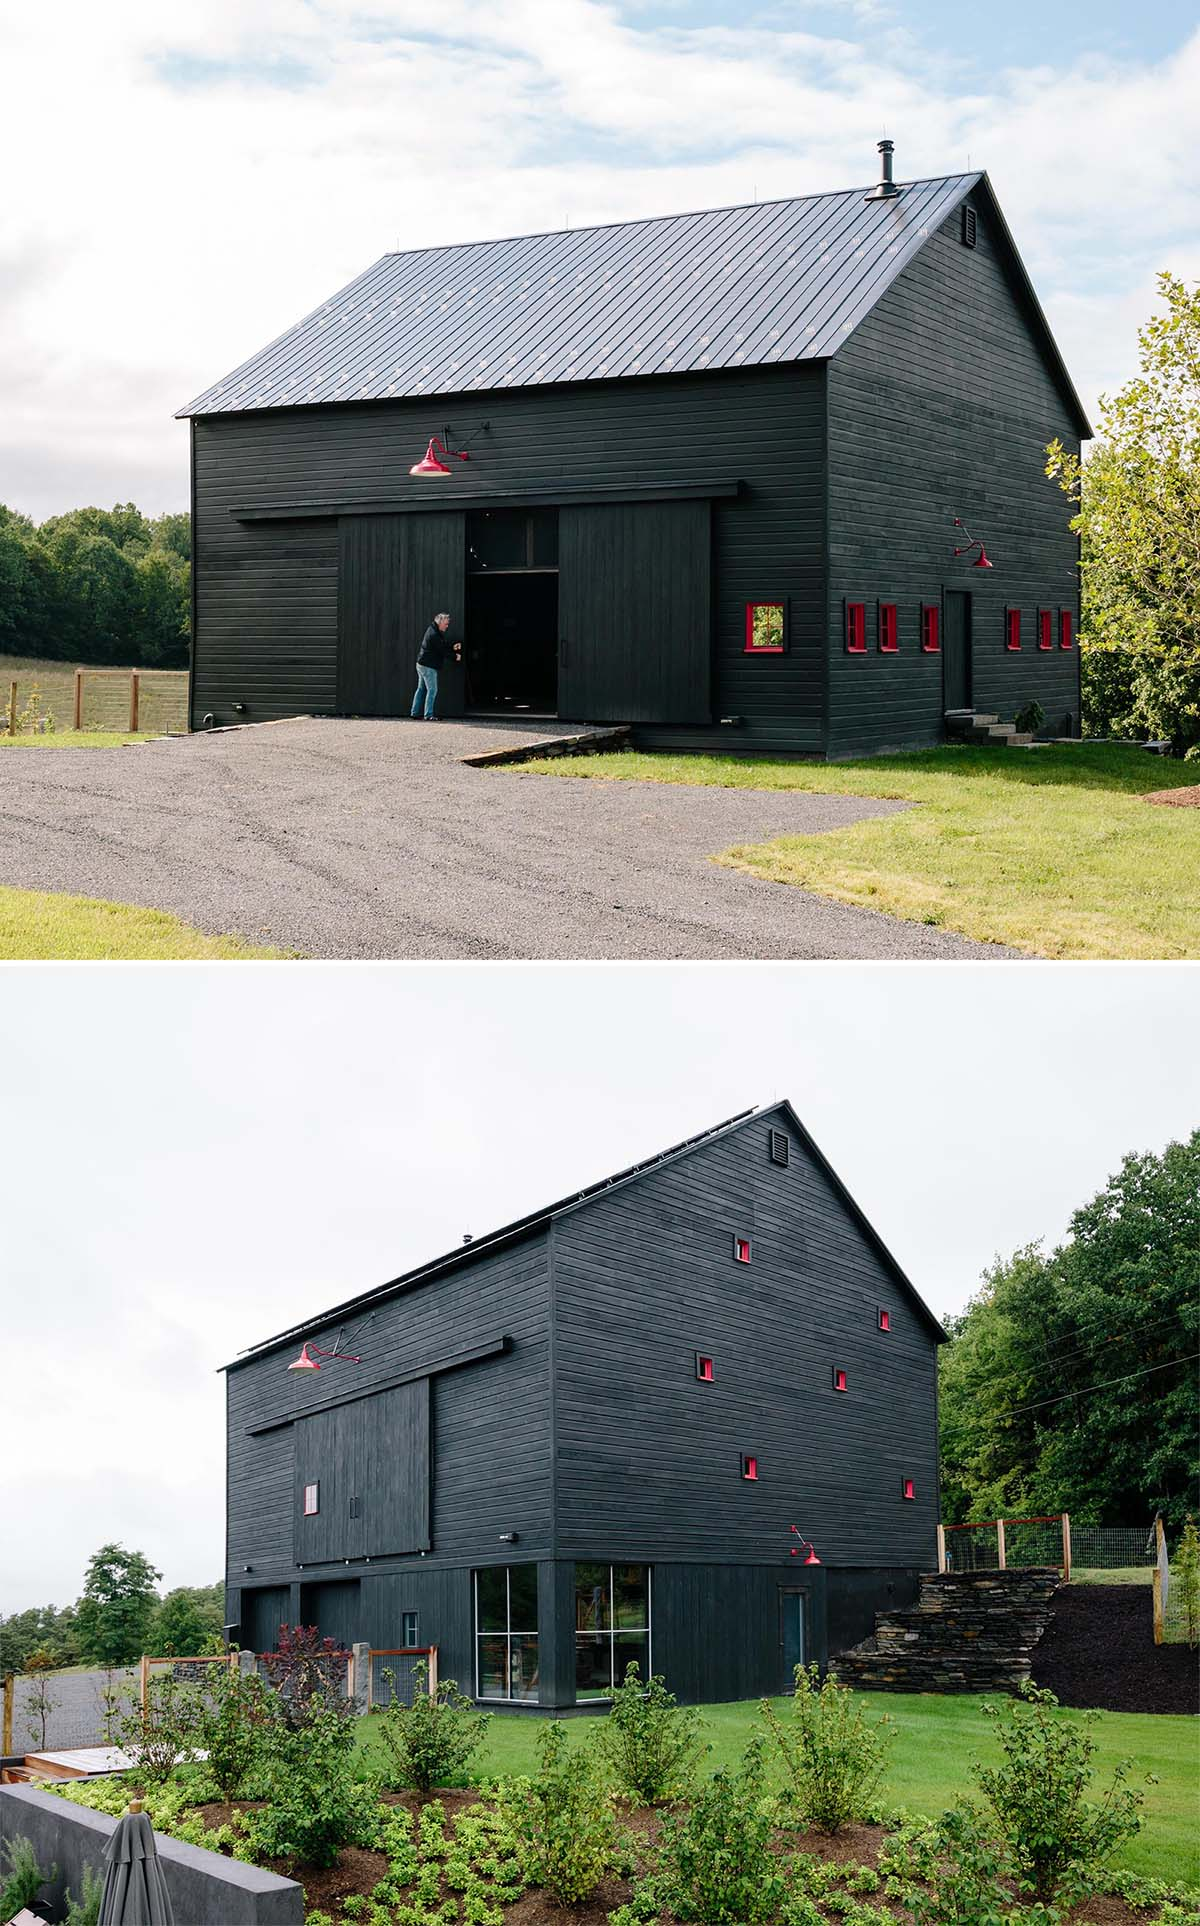 A modern black barn with solar panels and red window frames.